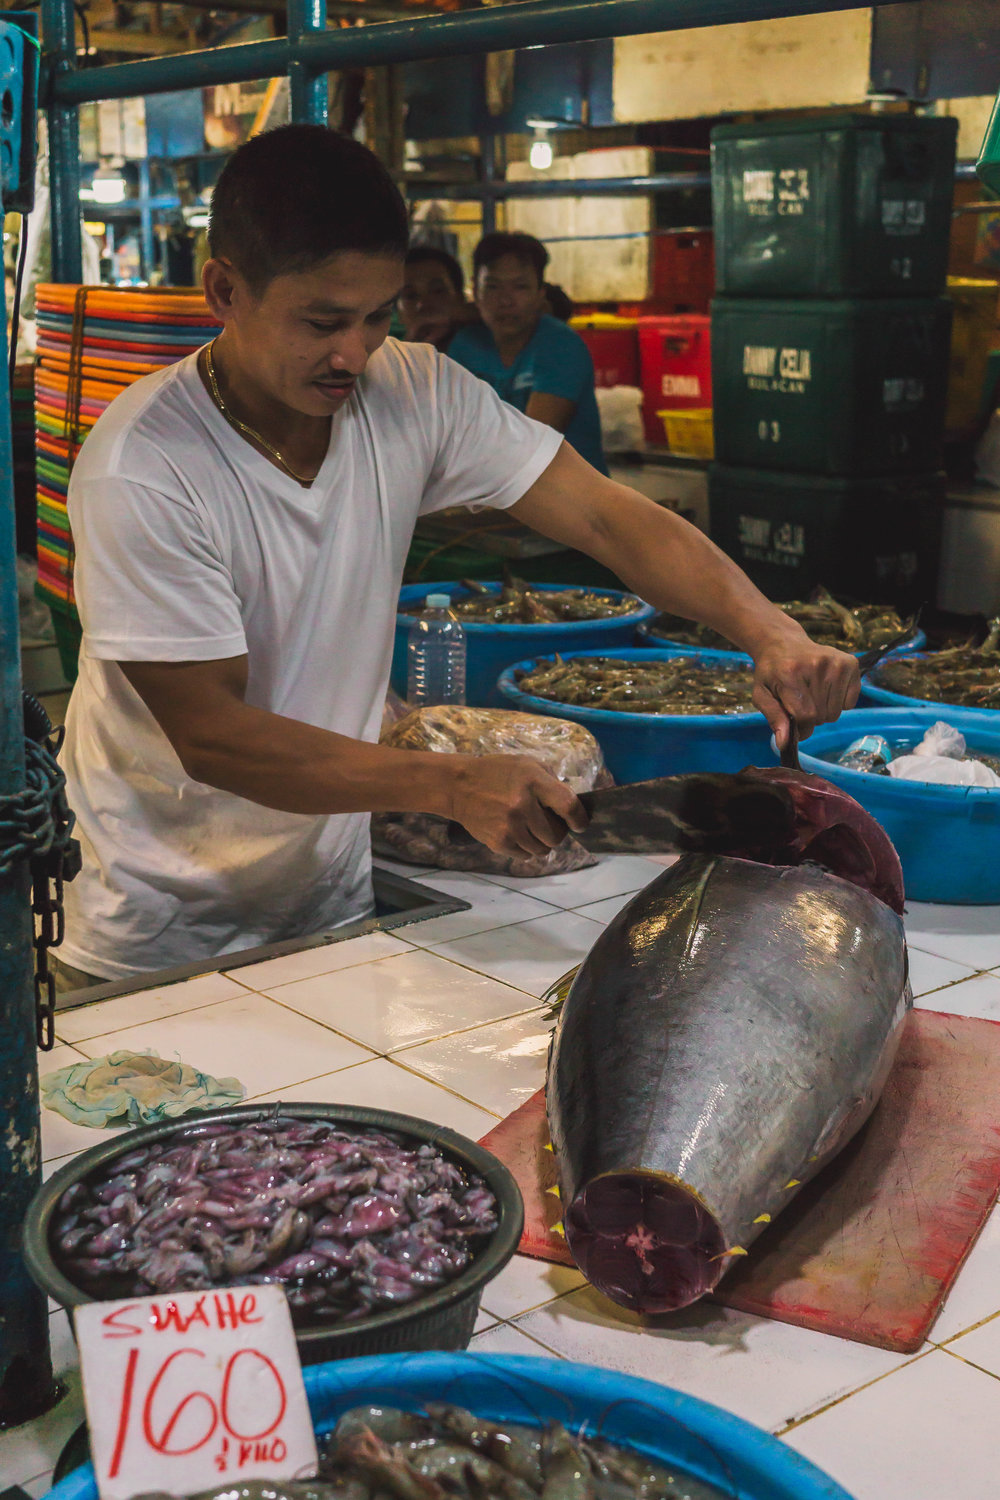 Tuna sashimi, the Philippines